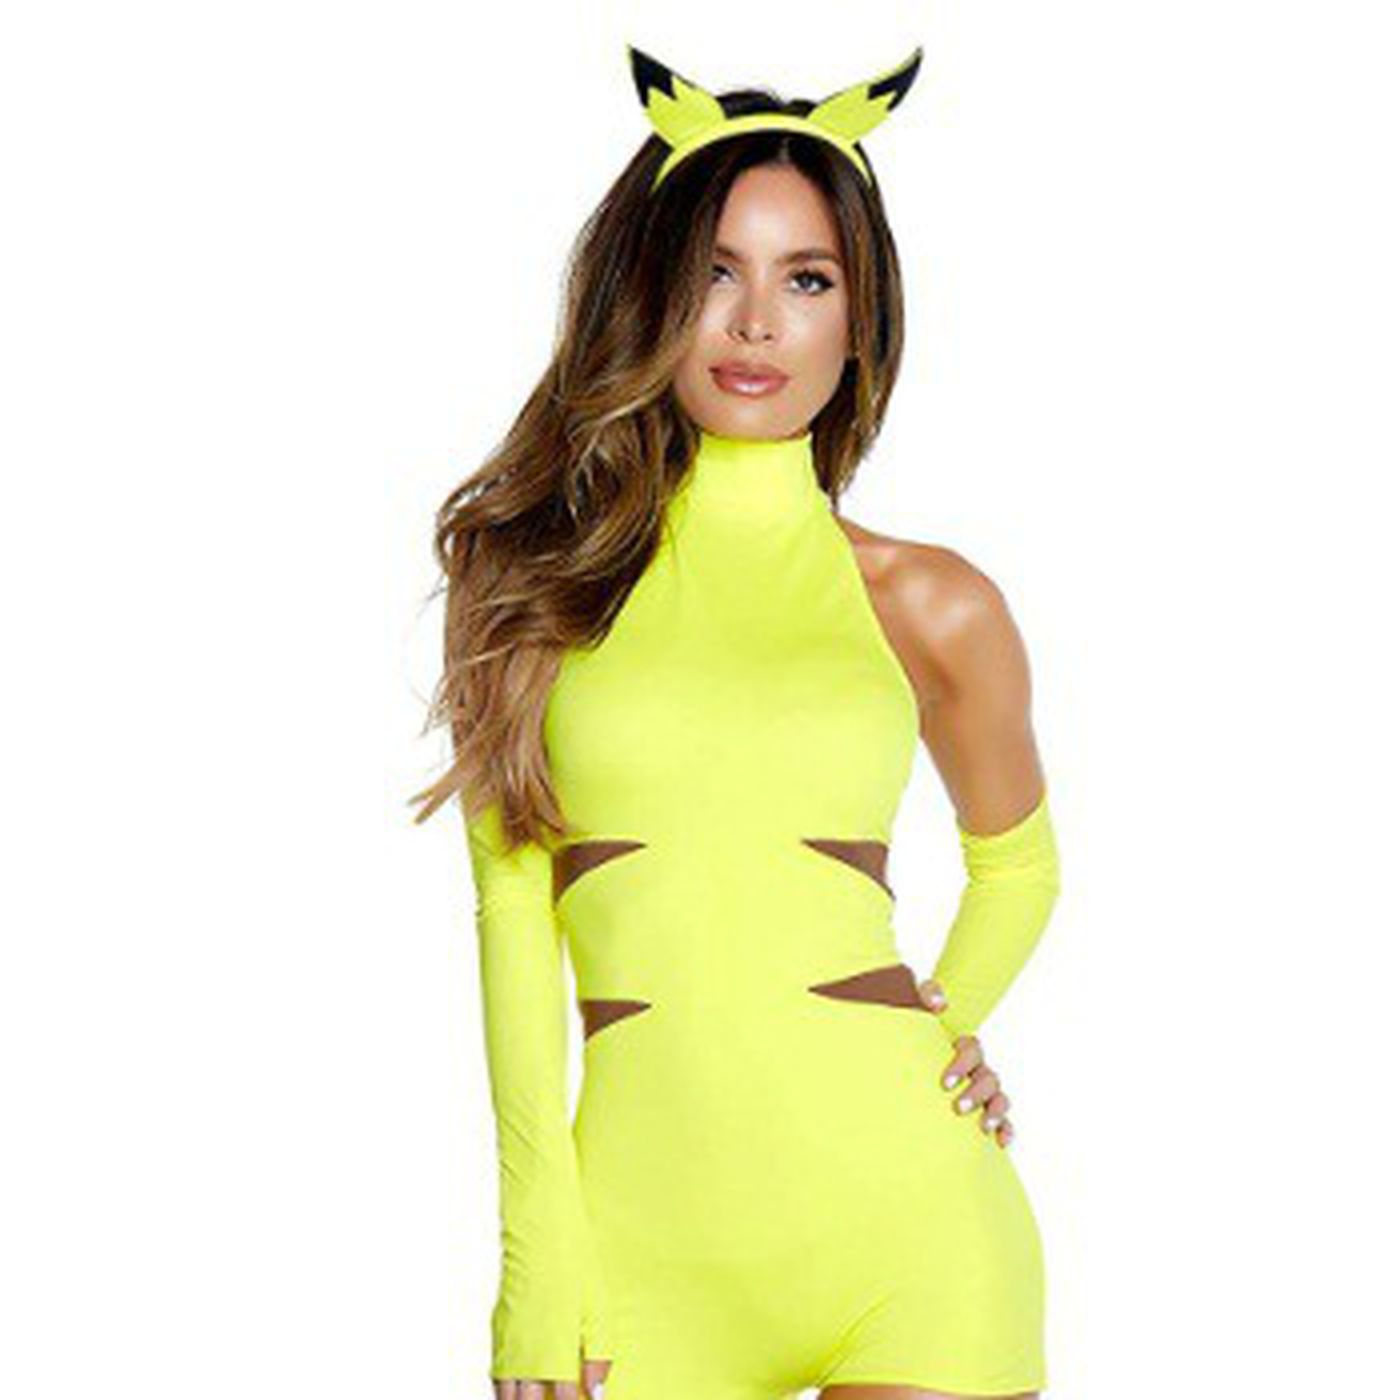 454584a86 2016 in sexy Halloween costumes, from Pikachu to Harambe - Vox